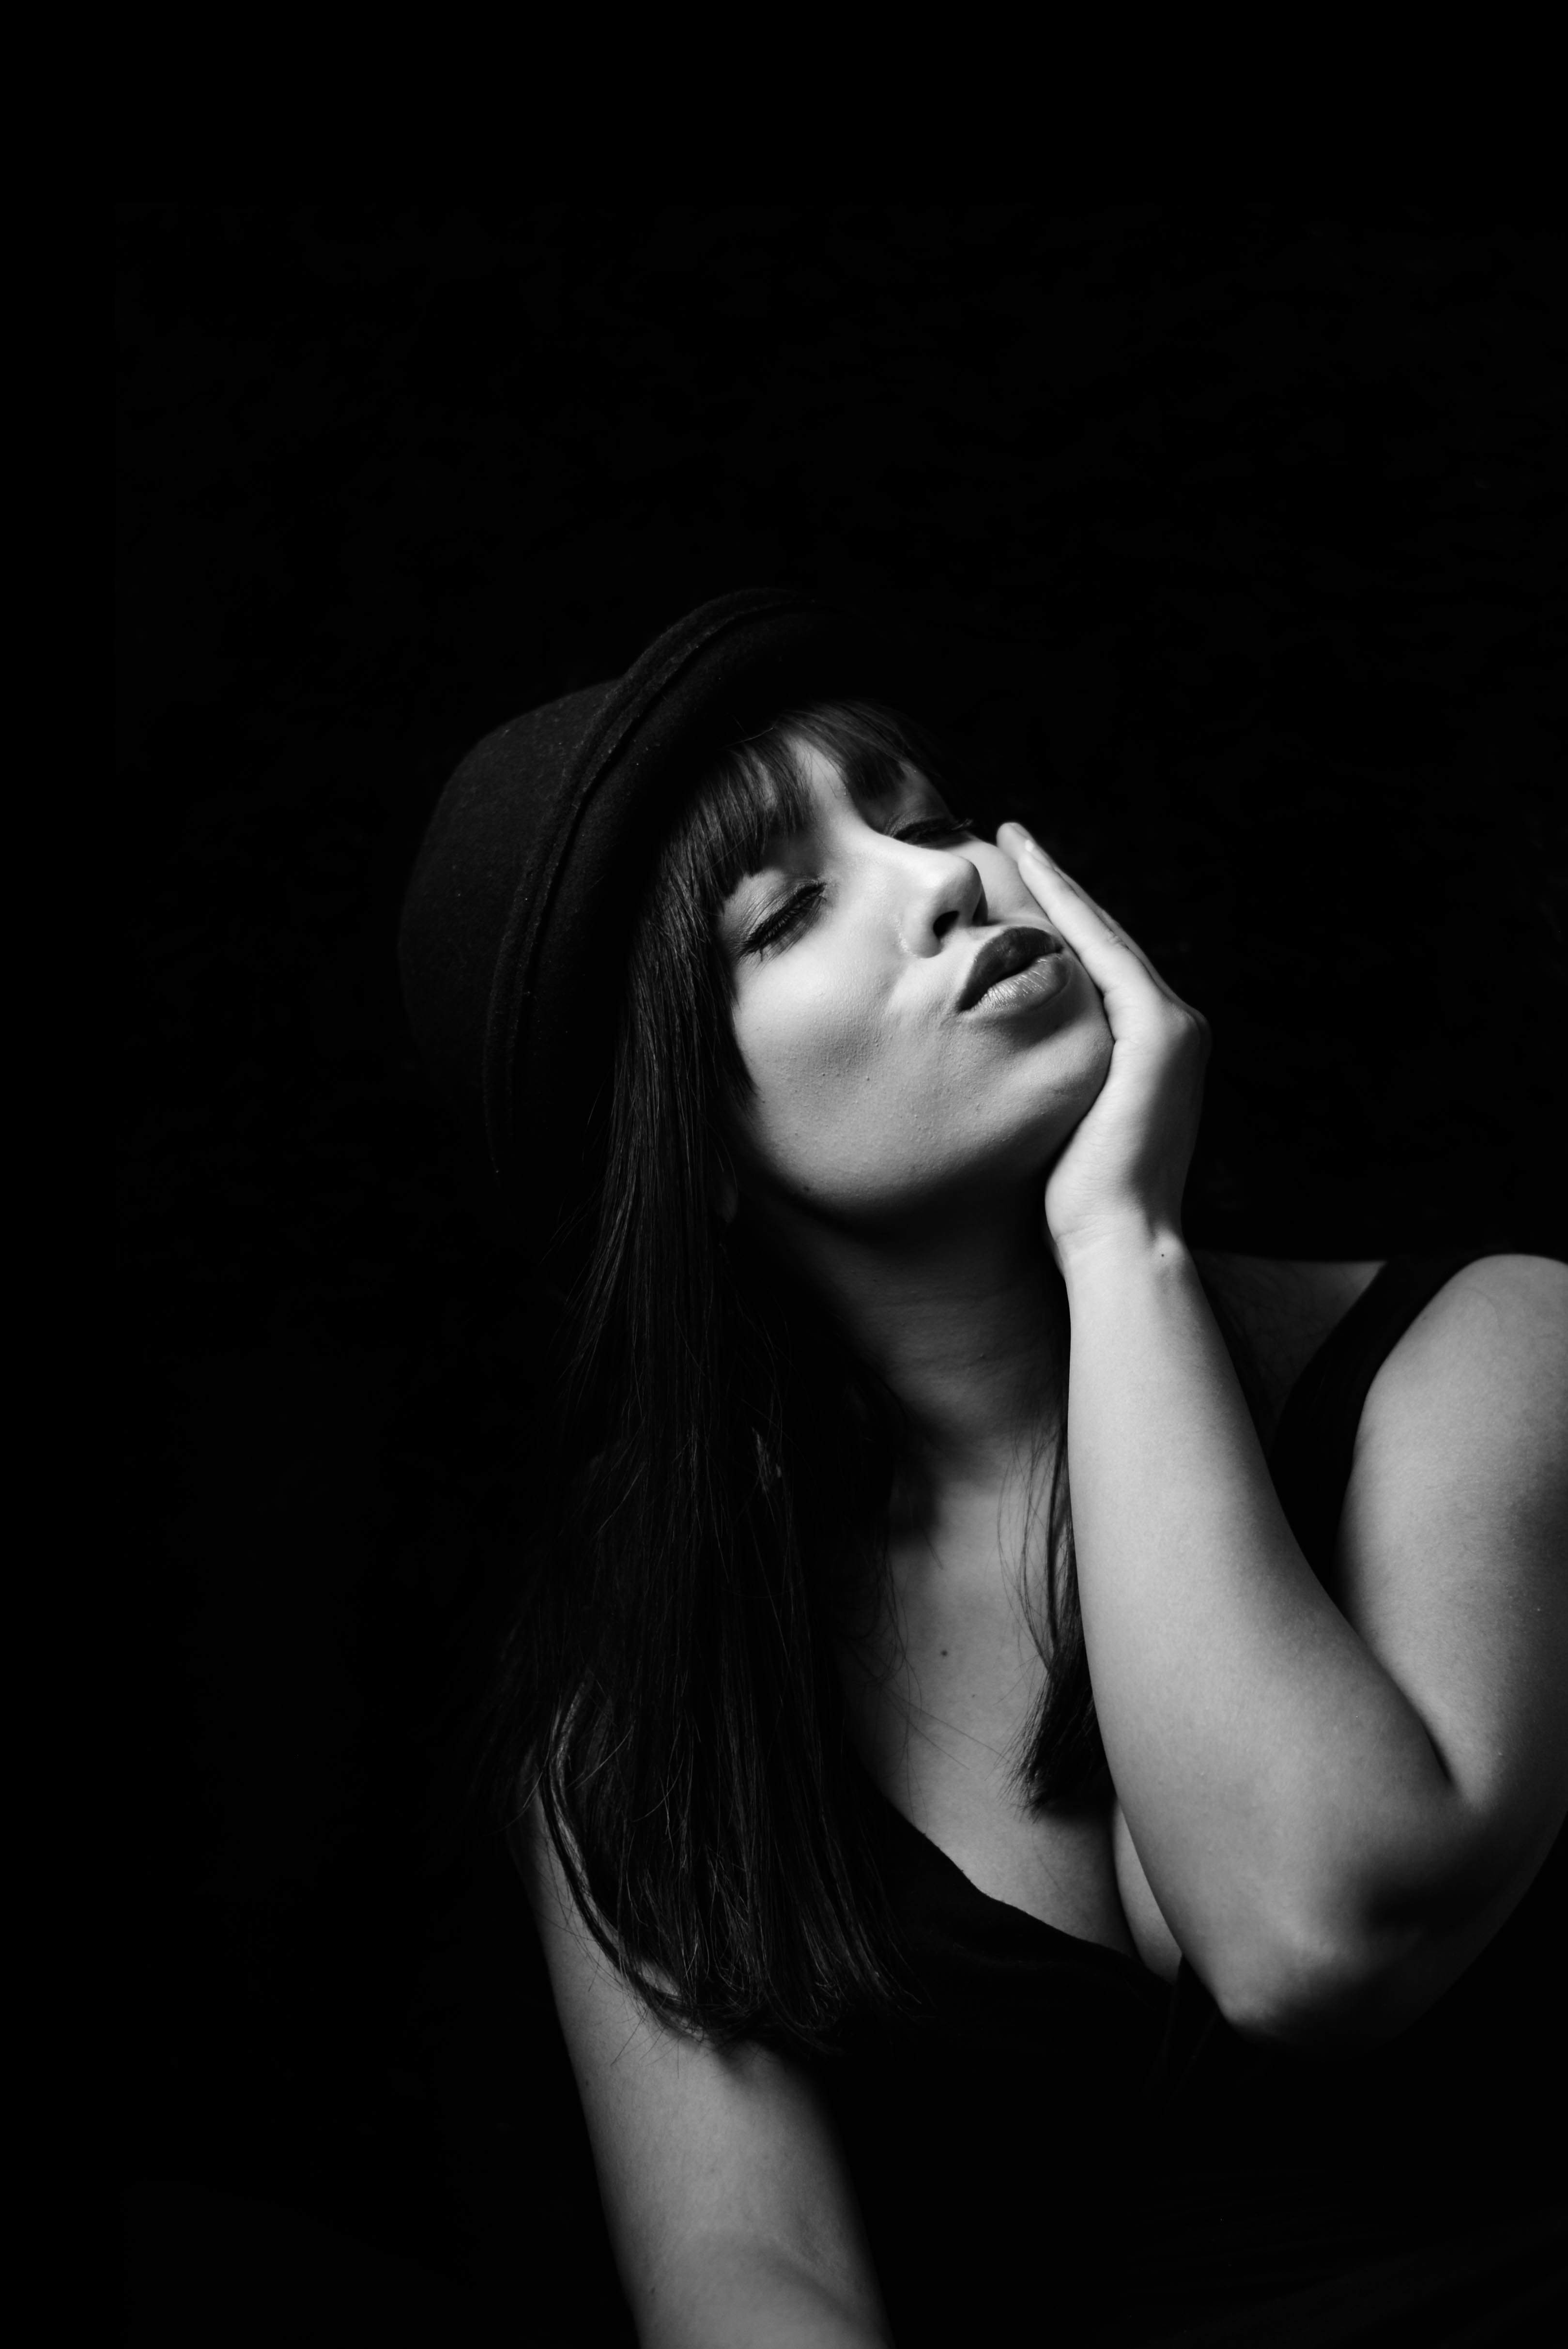 Grayscale Photography Of Woman In Tank Top Wearing Hat